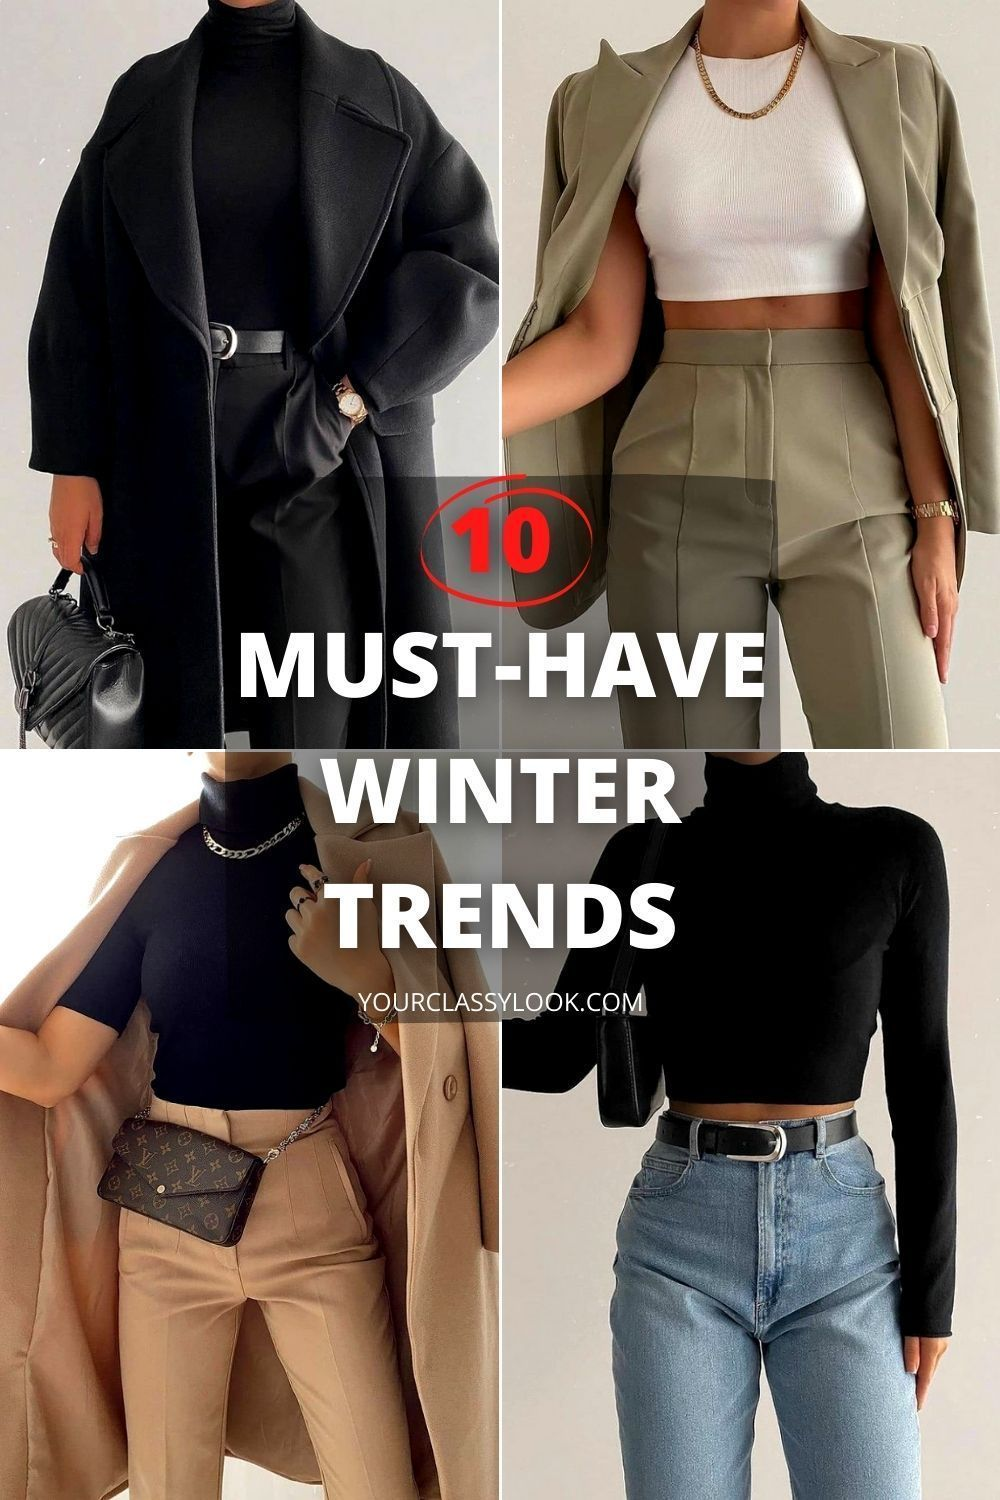 8 Key Fashion Trends for Winter 8 - Your Classy Look  Casual